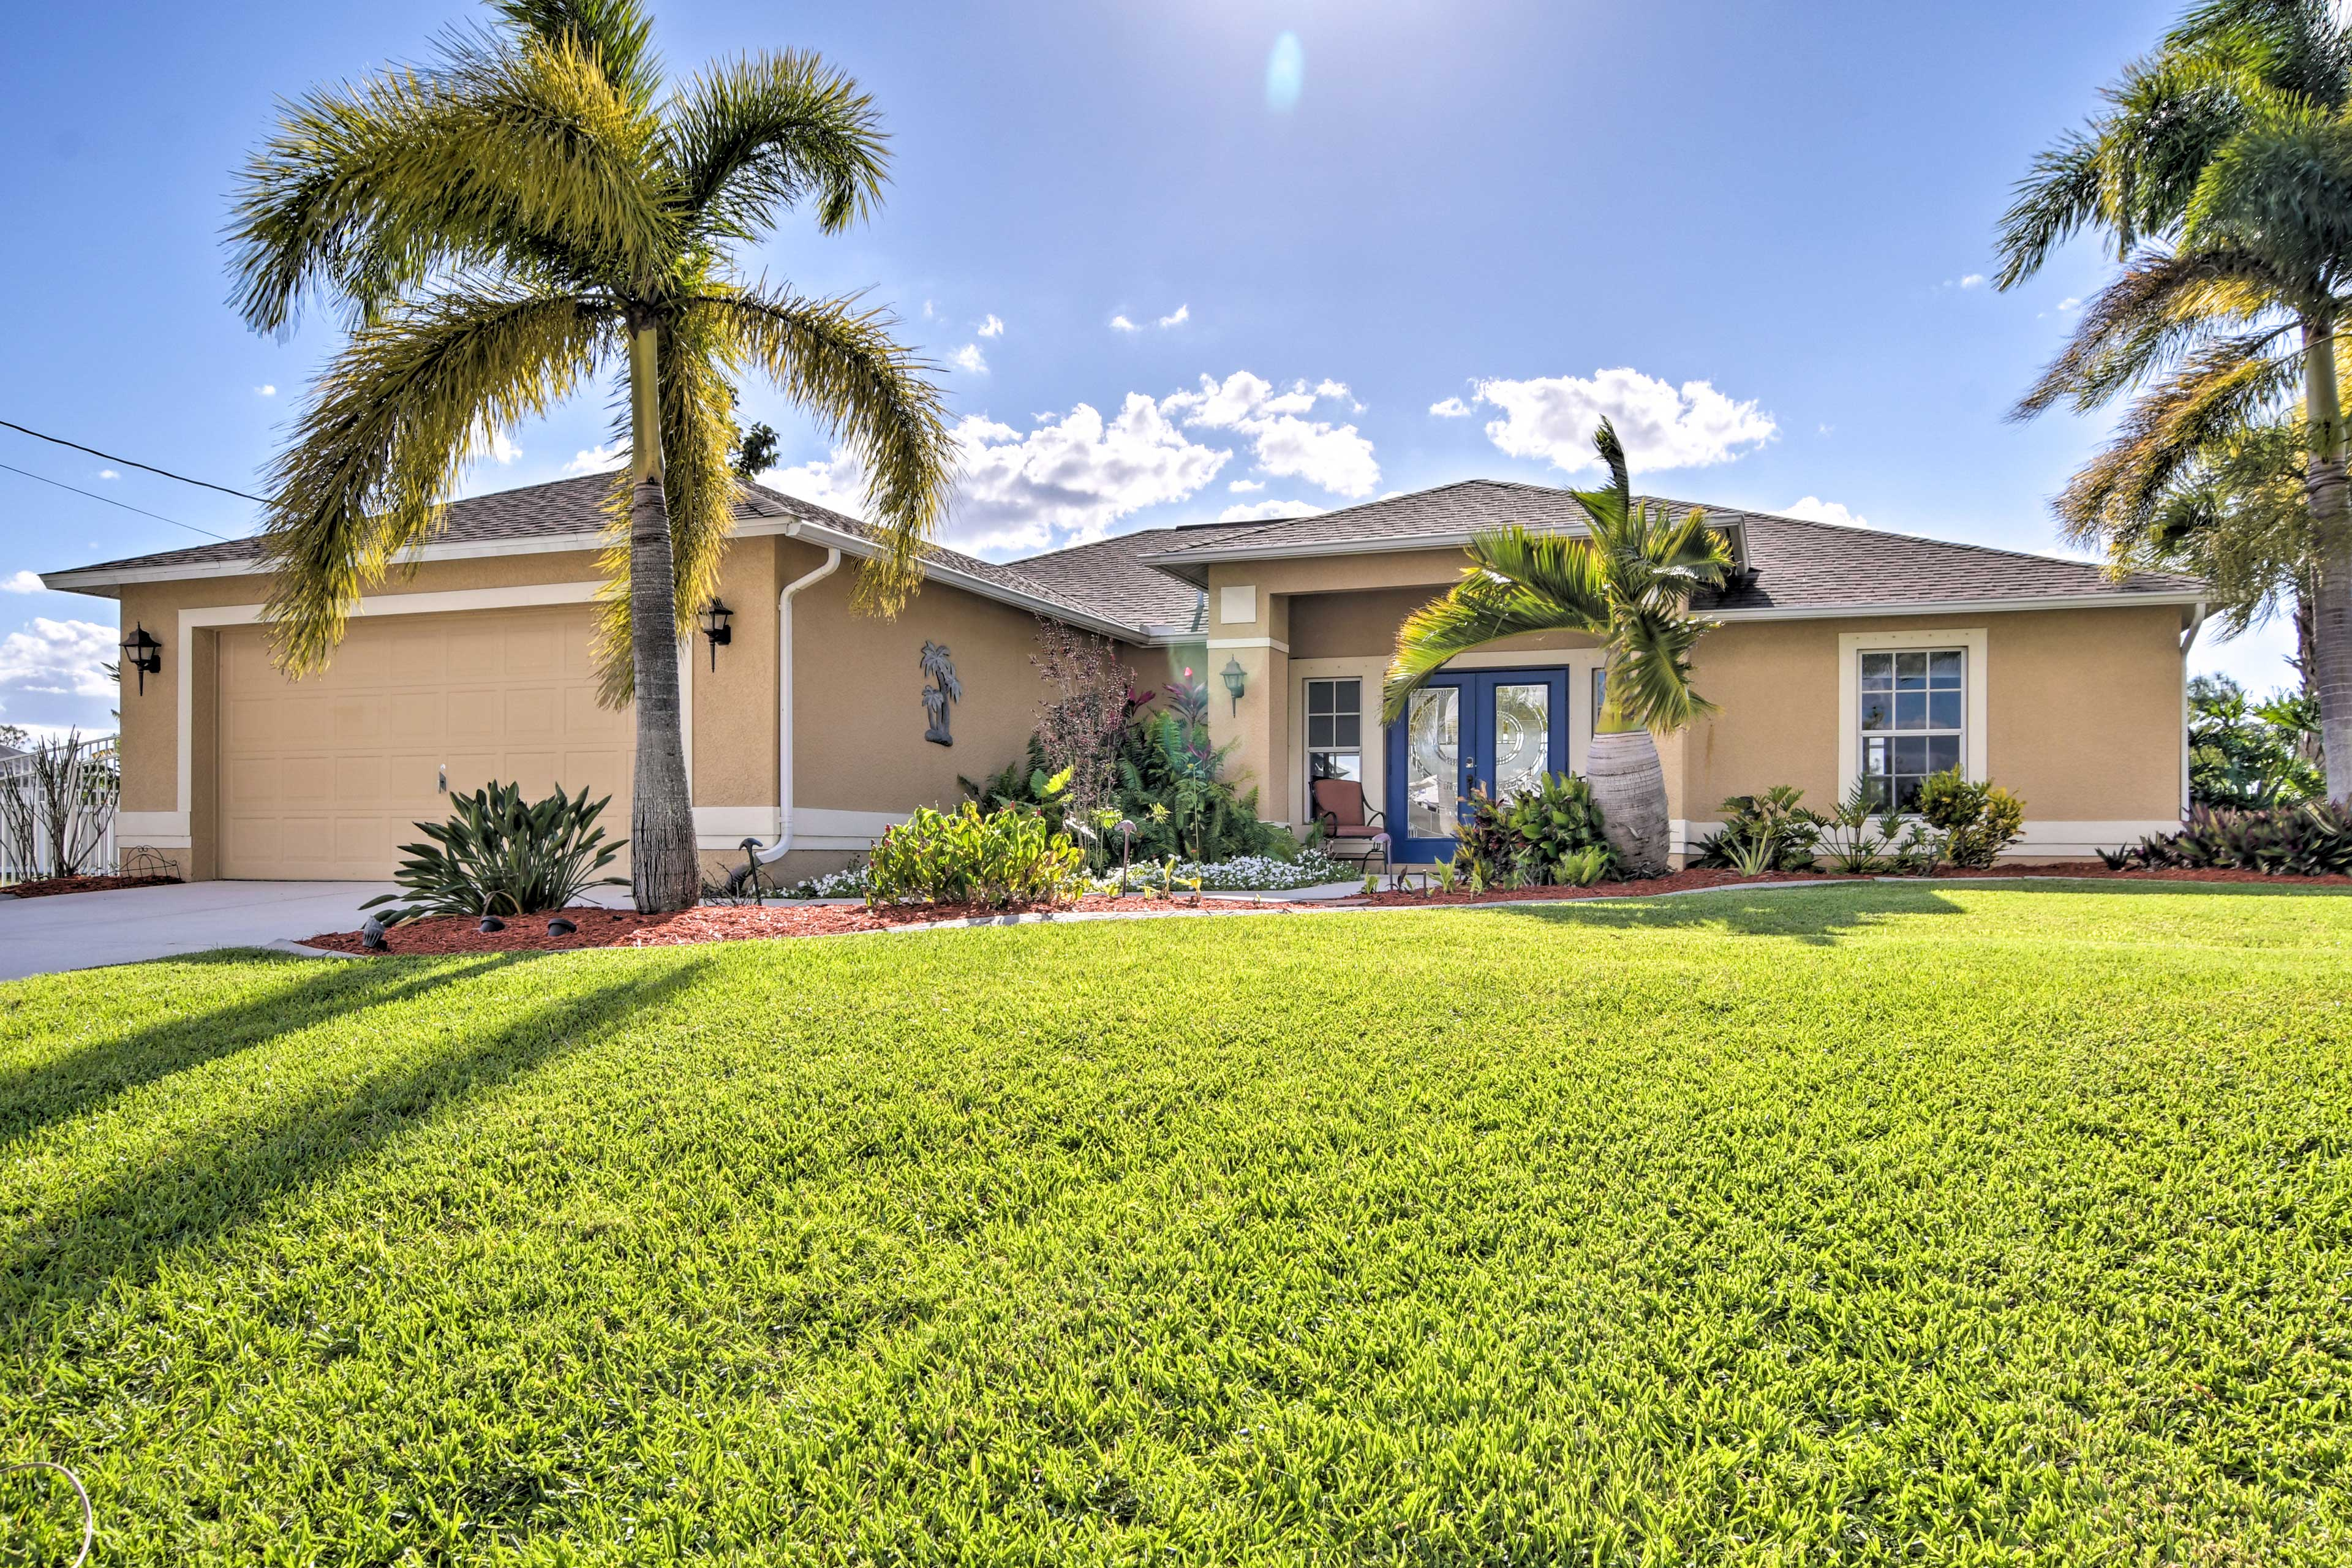 A wonderful Florida getaway awaits for the whole family!